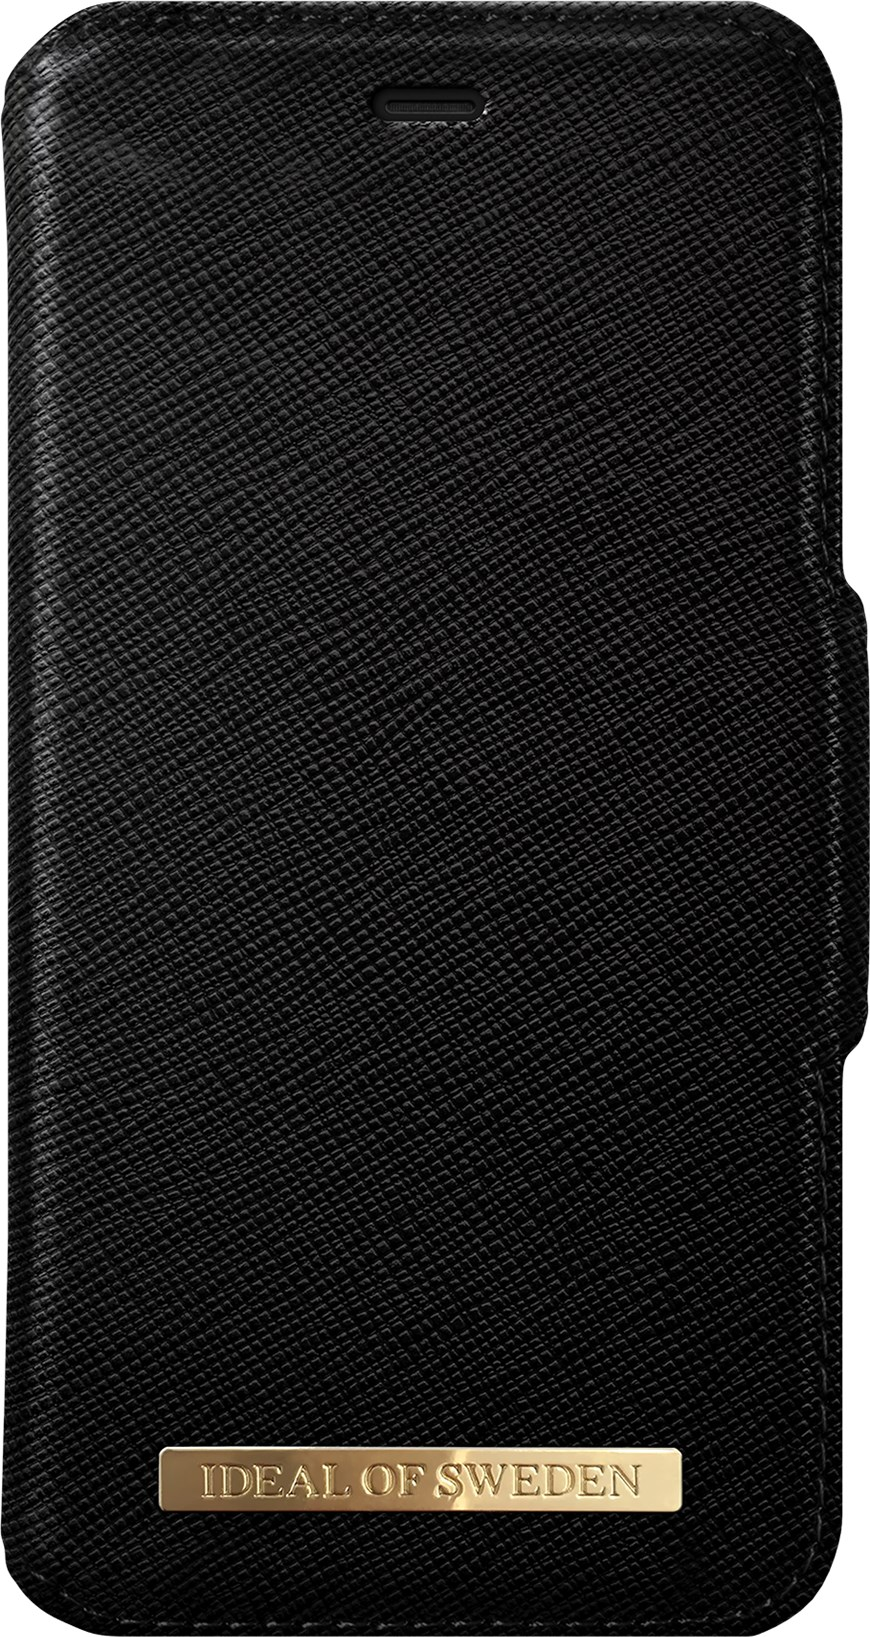 iDeal of Sweden Ideal Fashion Wallet Iphone 11 Black